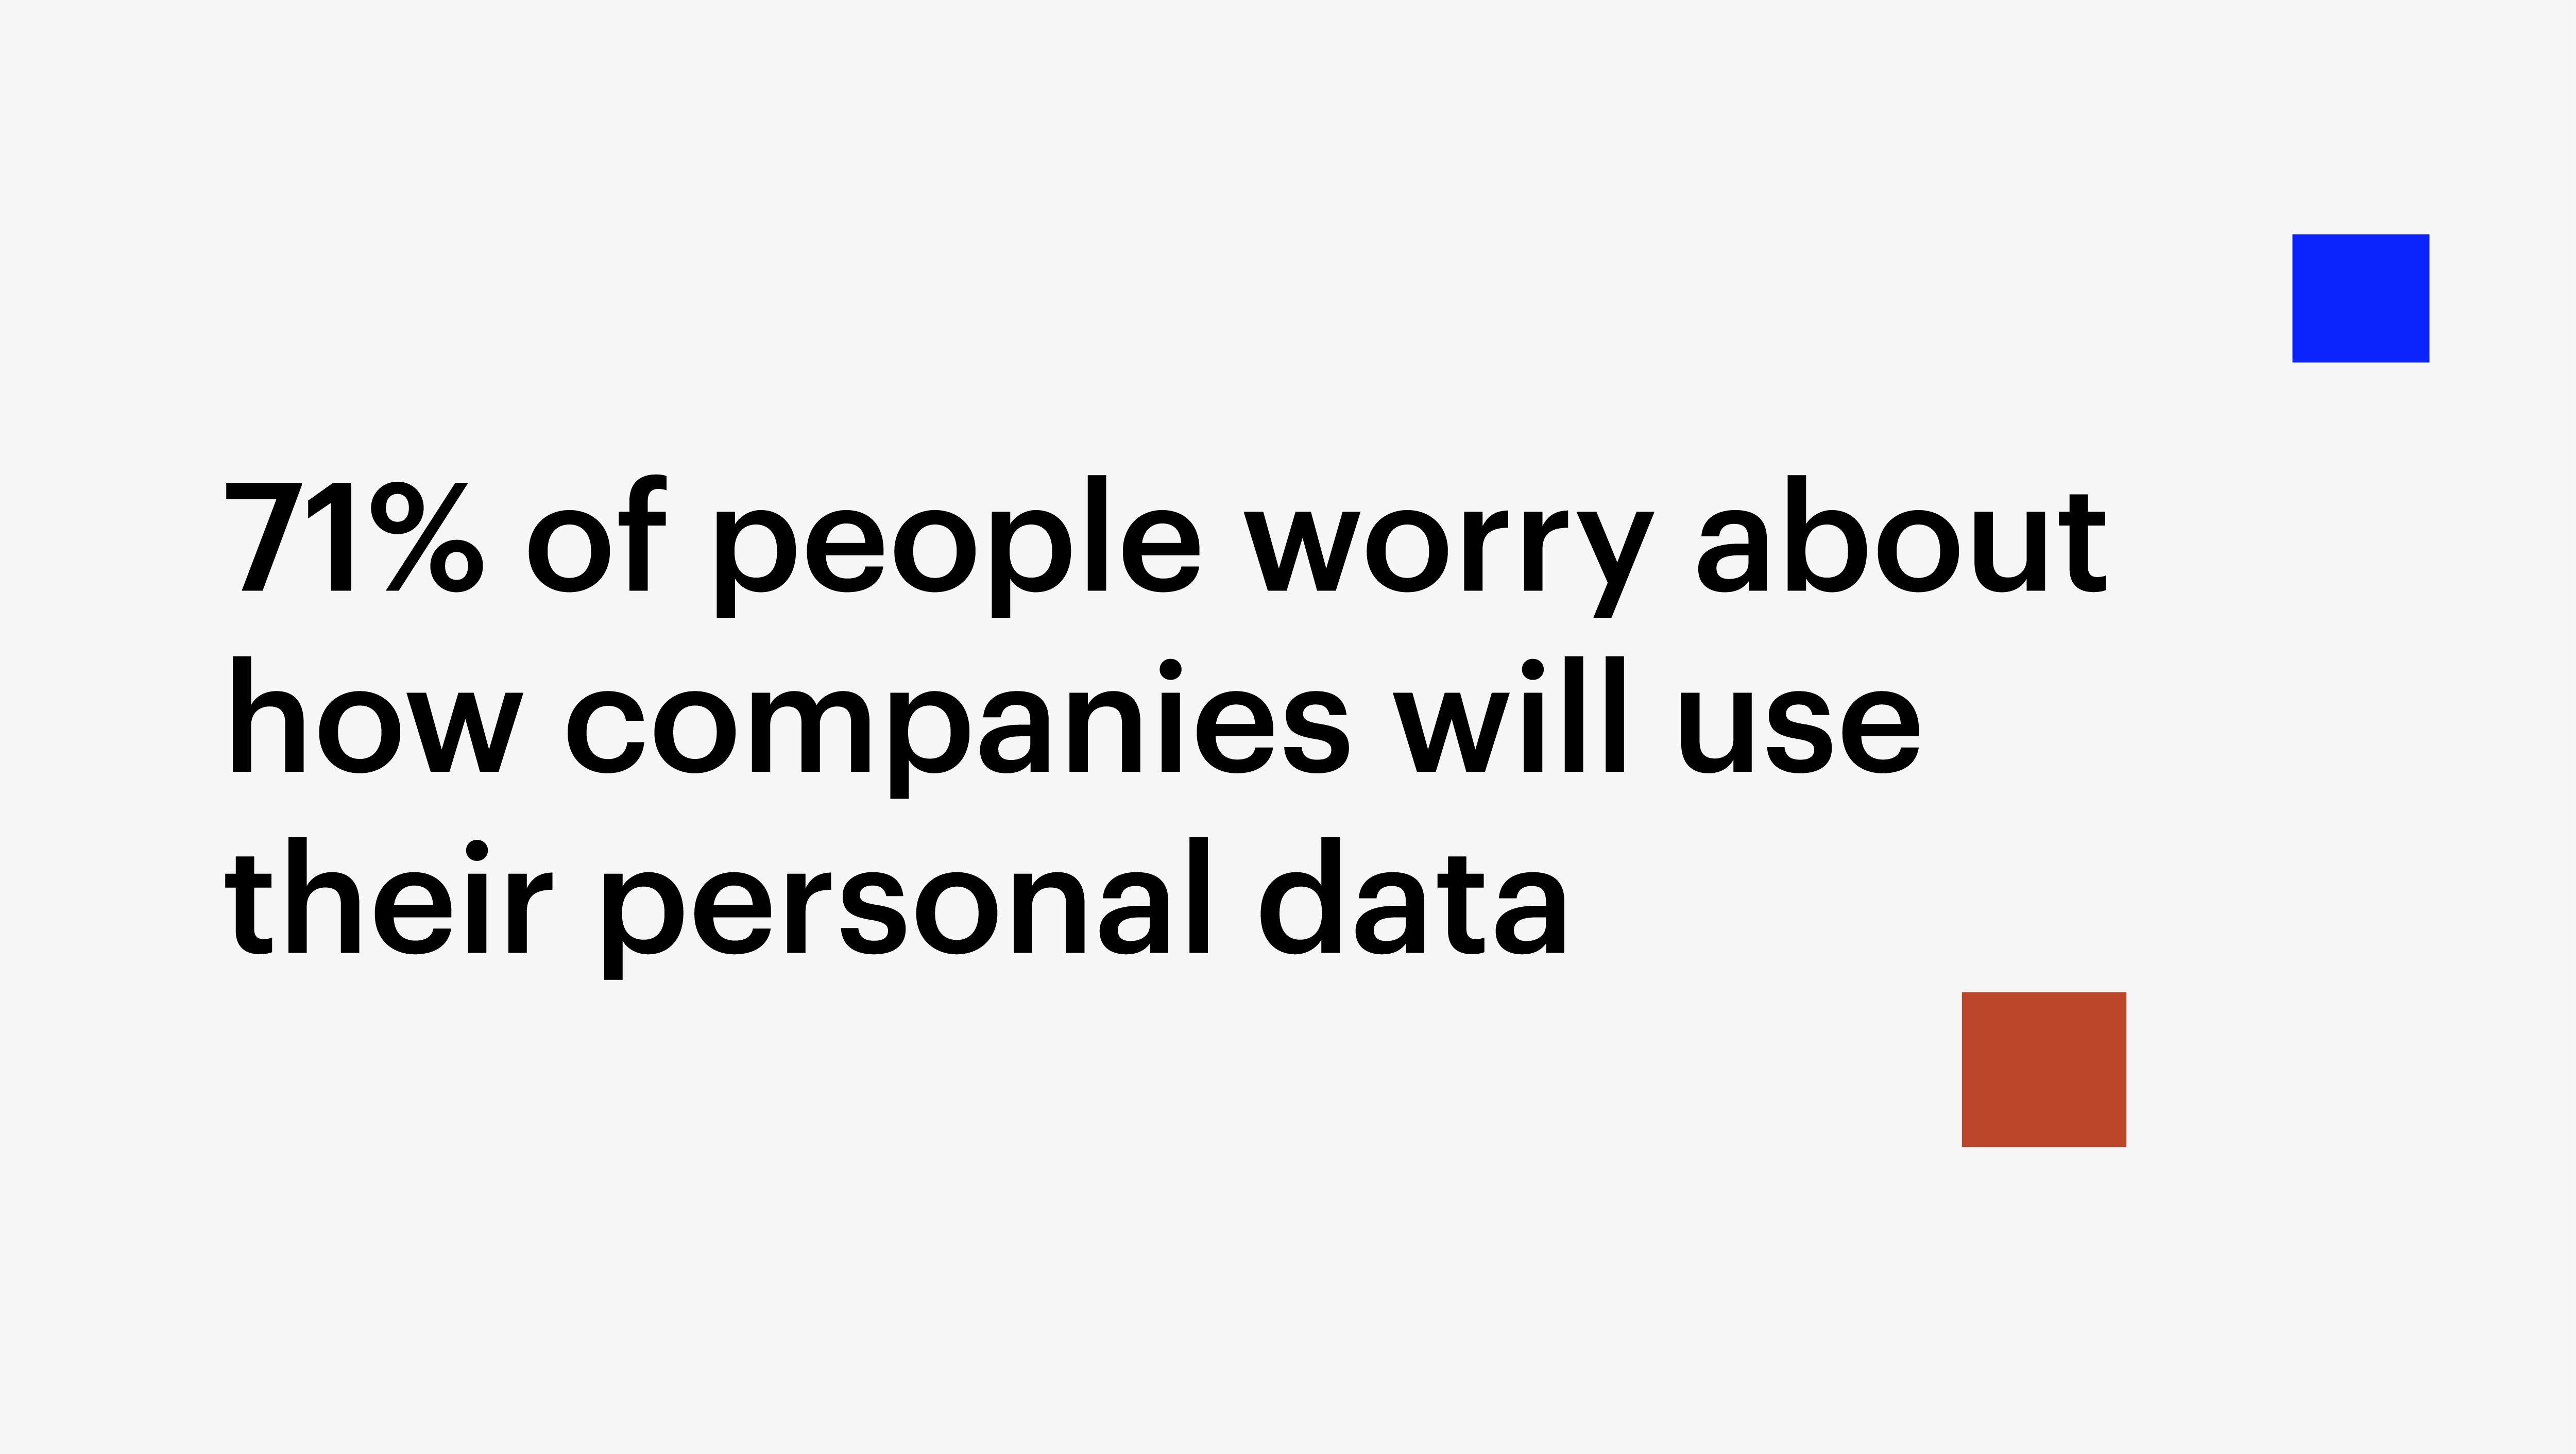 71% of people worry about how companies will use their personal data.